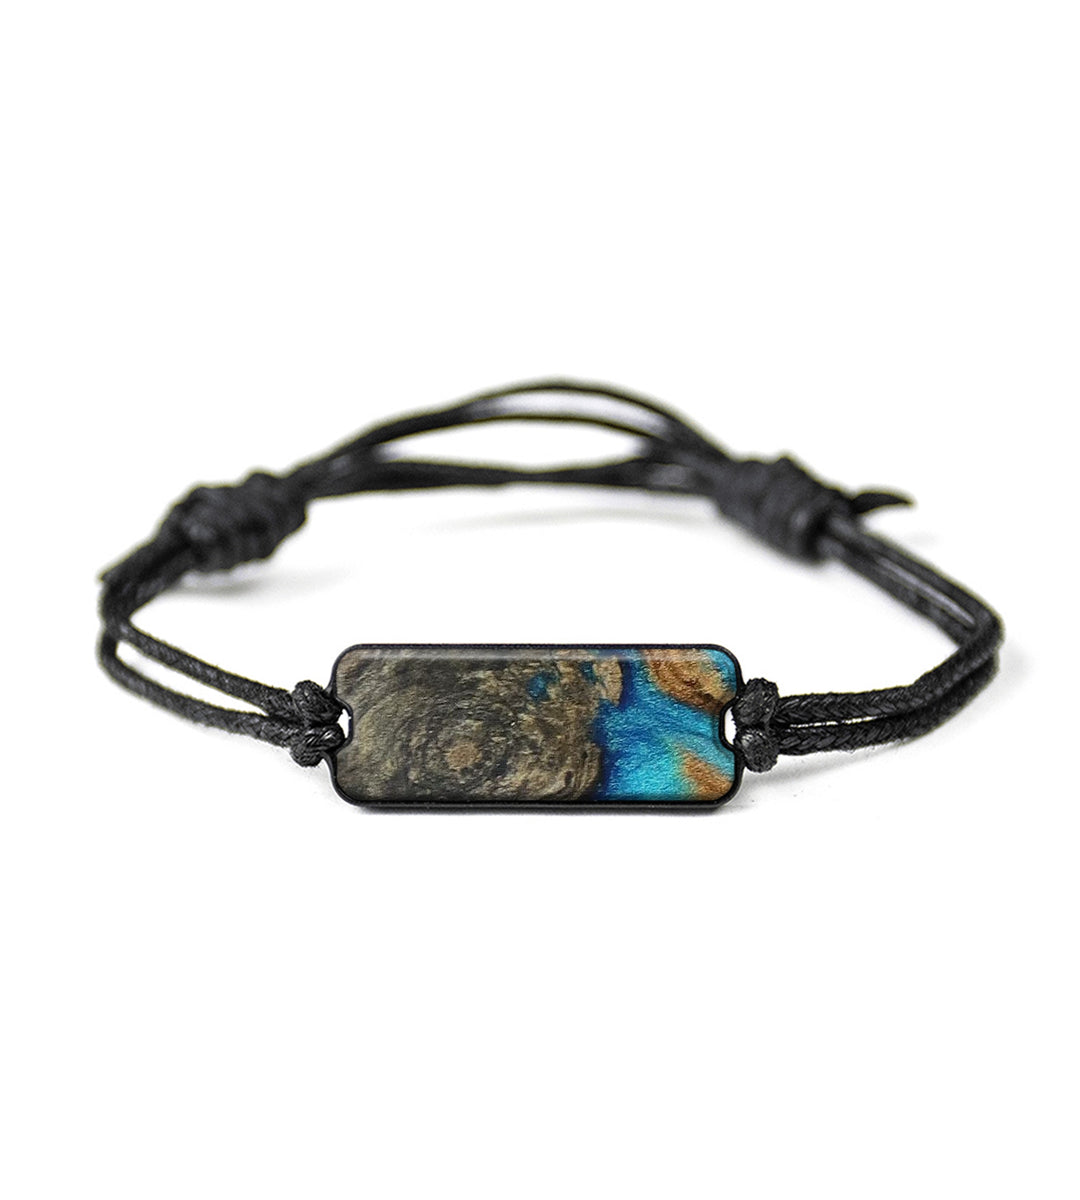 Classic Wood+Resin Bracelet - Whitney (Teal & Gold, 395437)